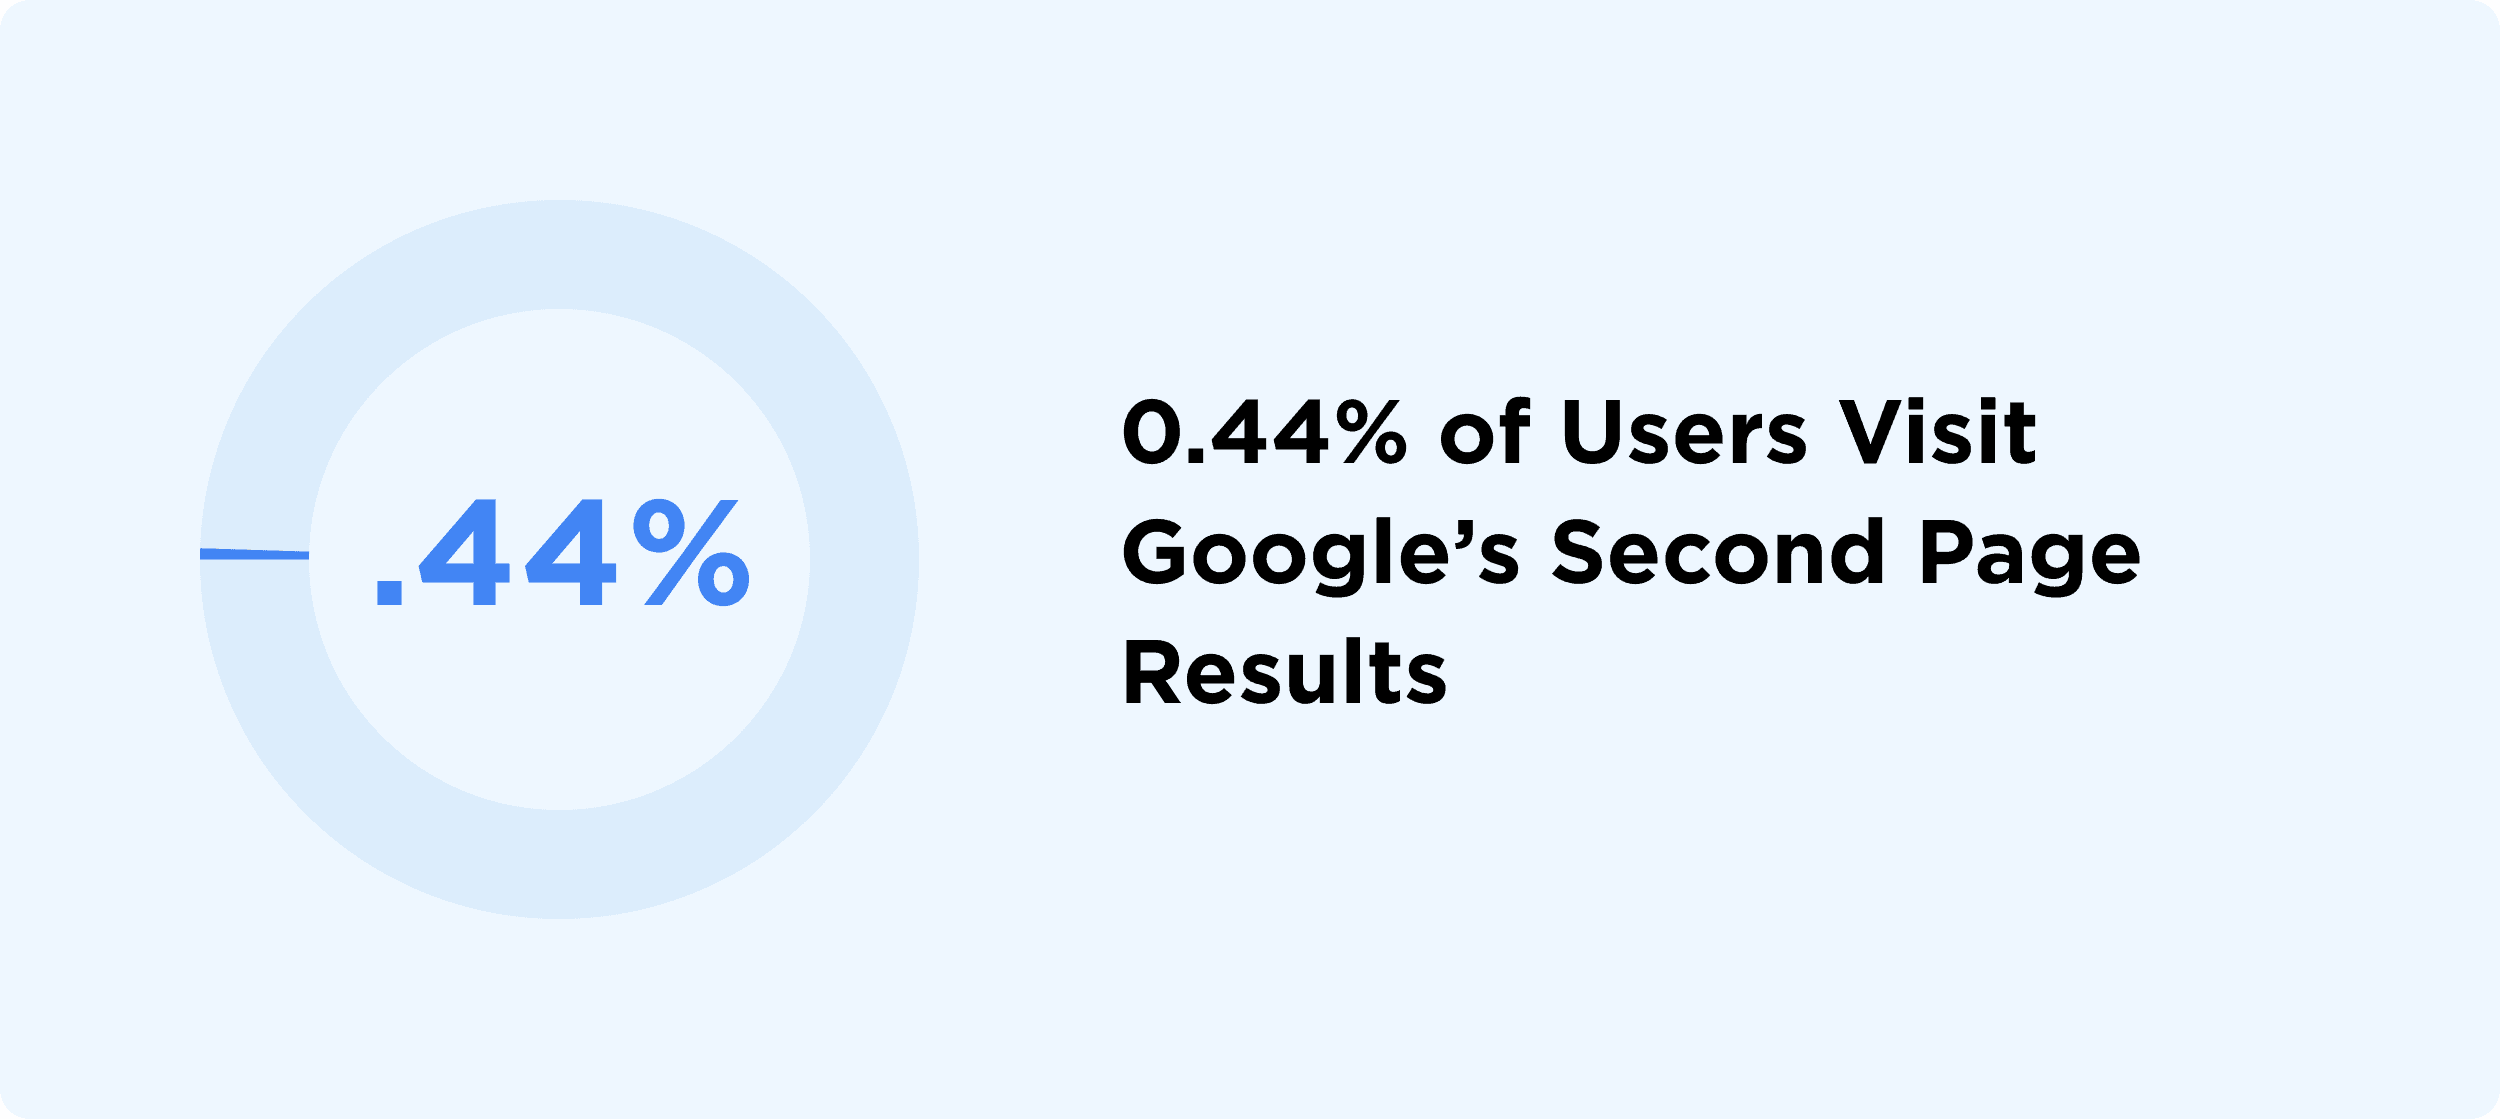 Less than 1% of Users Visit Googles Second Page Results